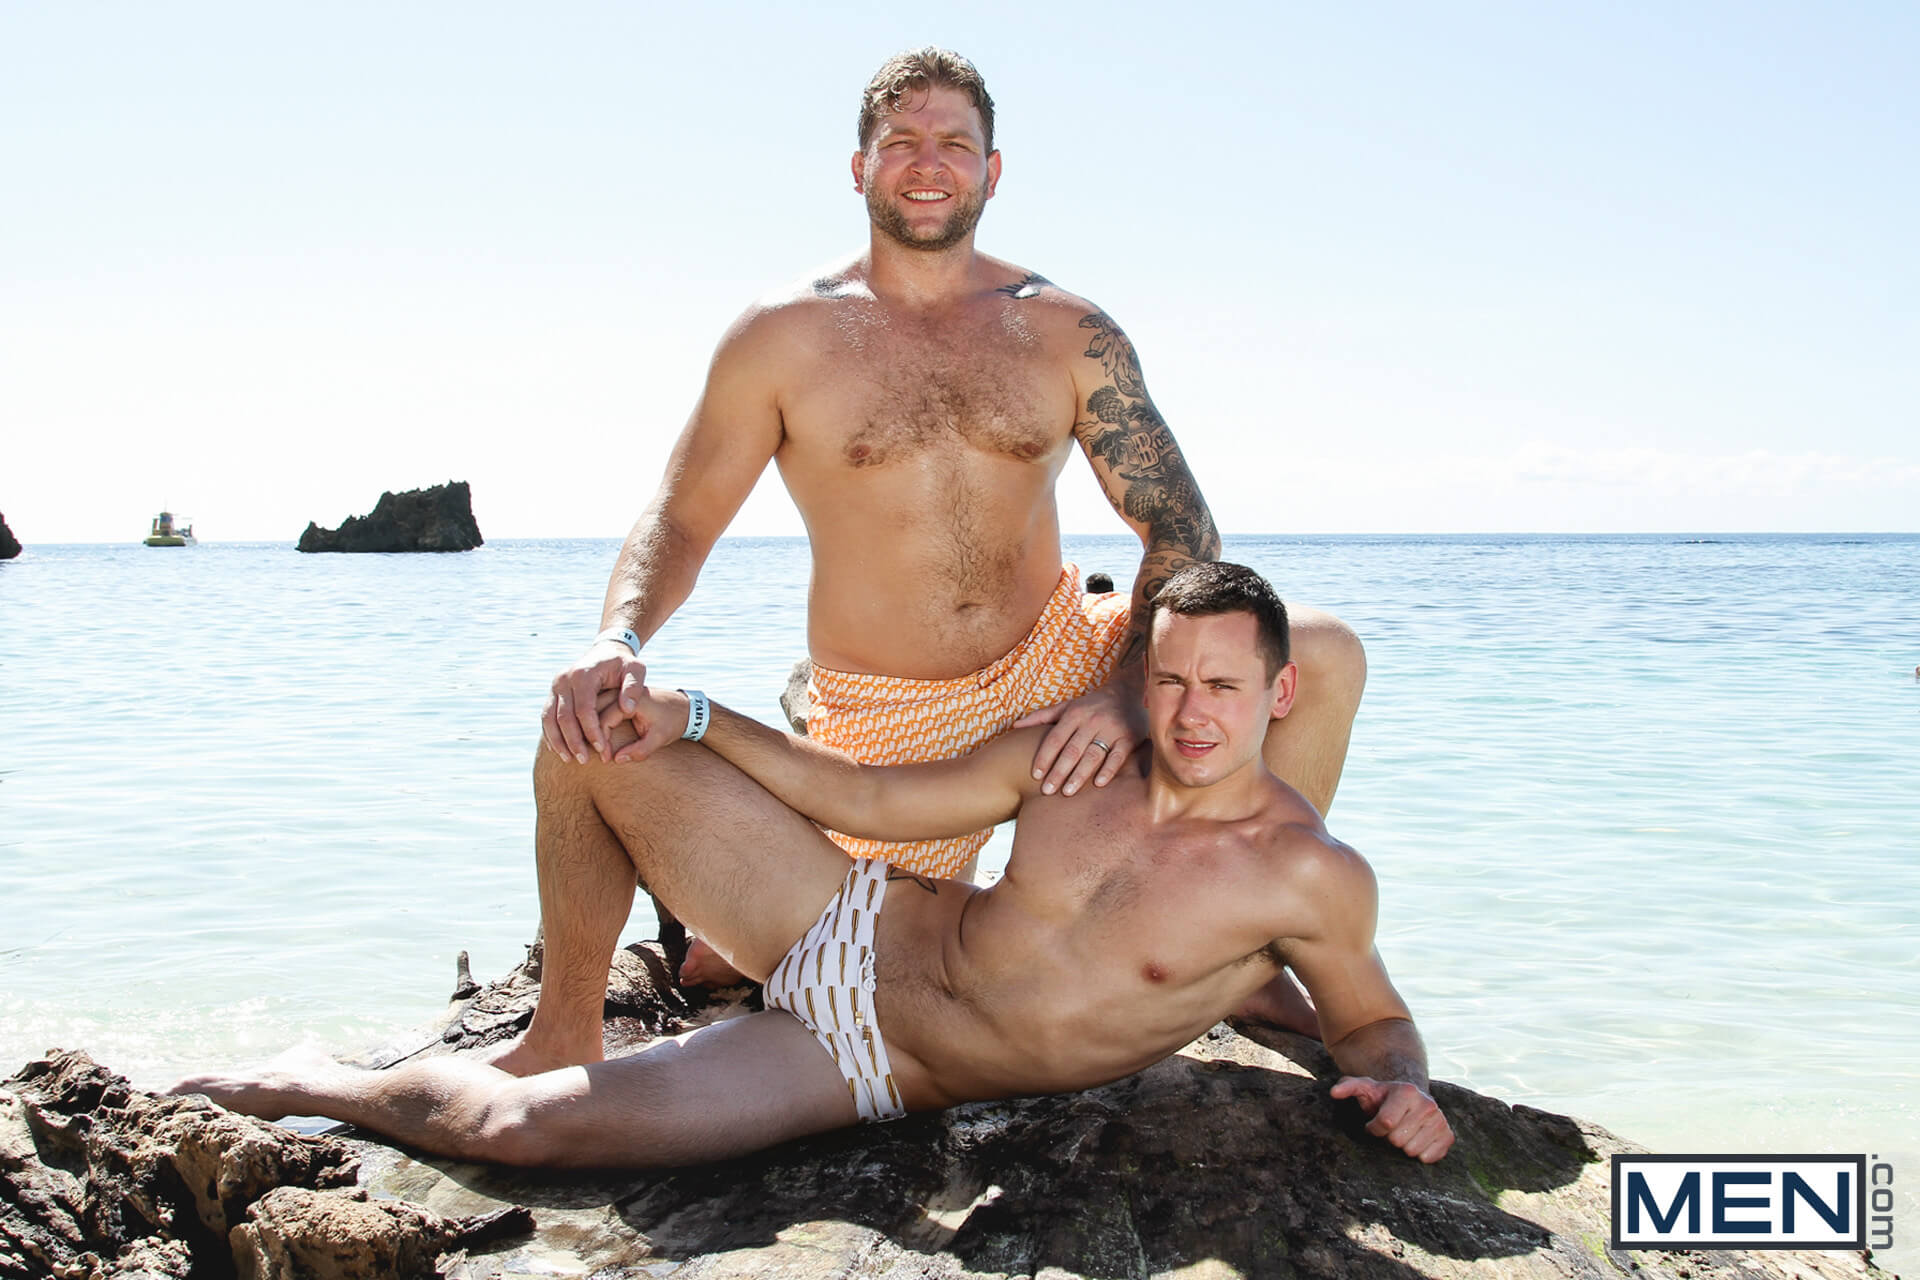 men gods of men men at sea part 6 brenner bolton colby jansen gay porn blog image 28